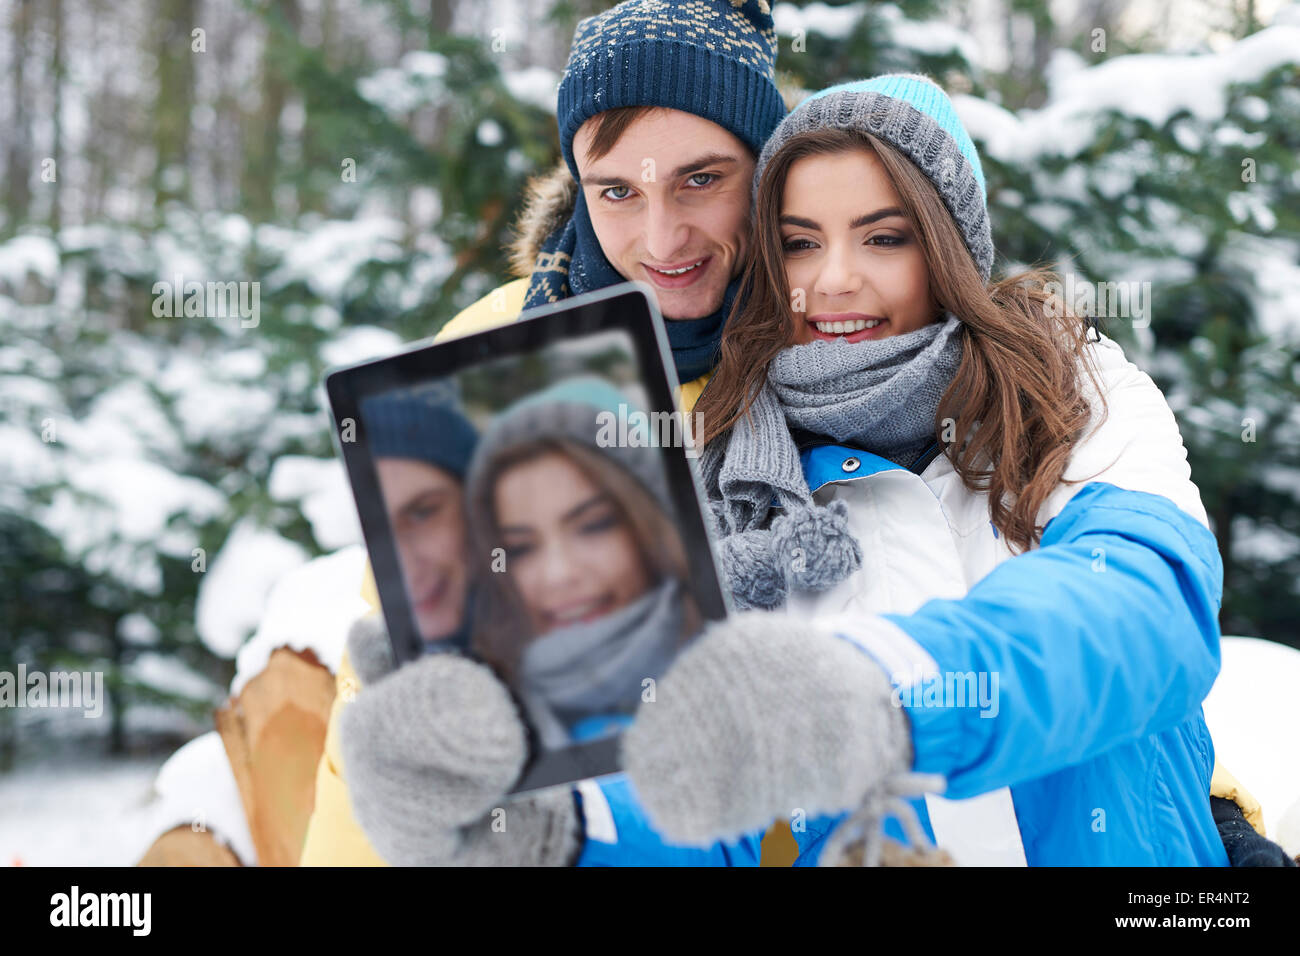 Hey baby, smile! I'm taking selfie by digital tablet. Debica, Poland - Stock Image